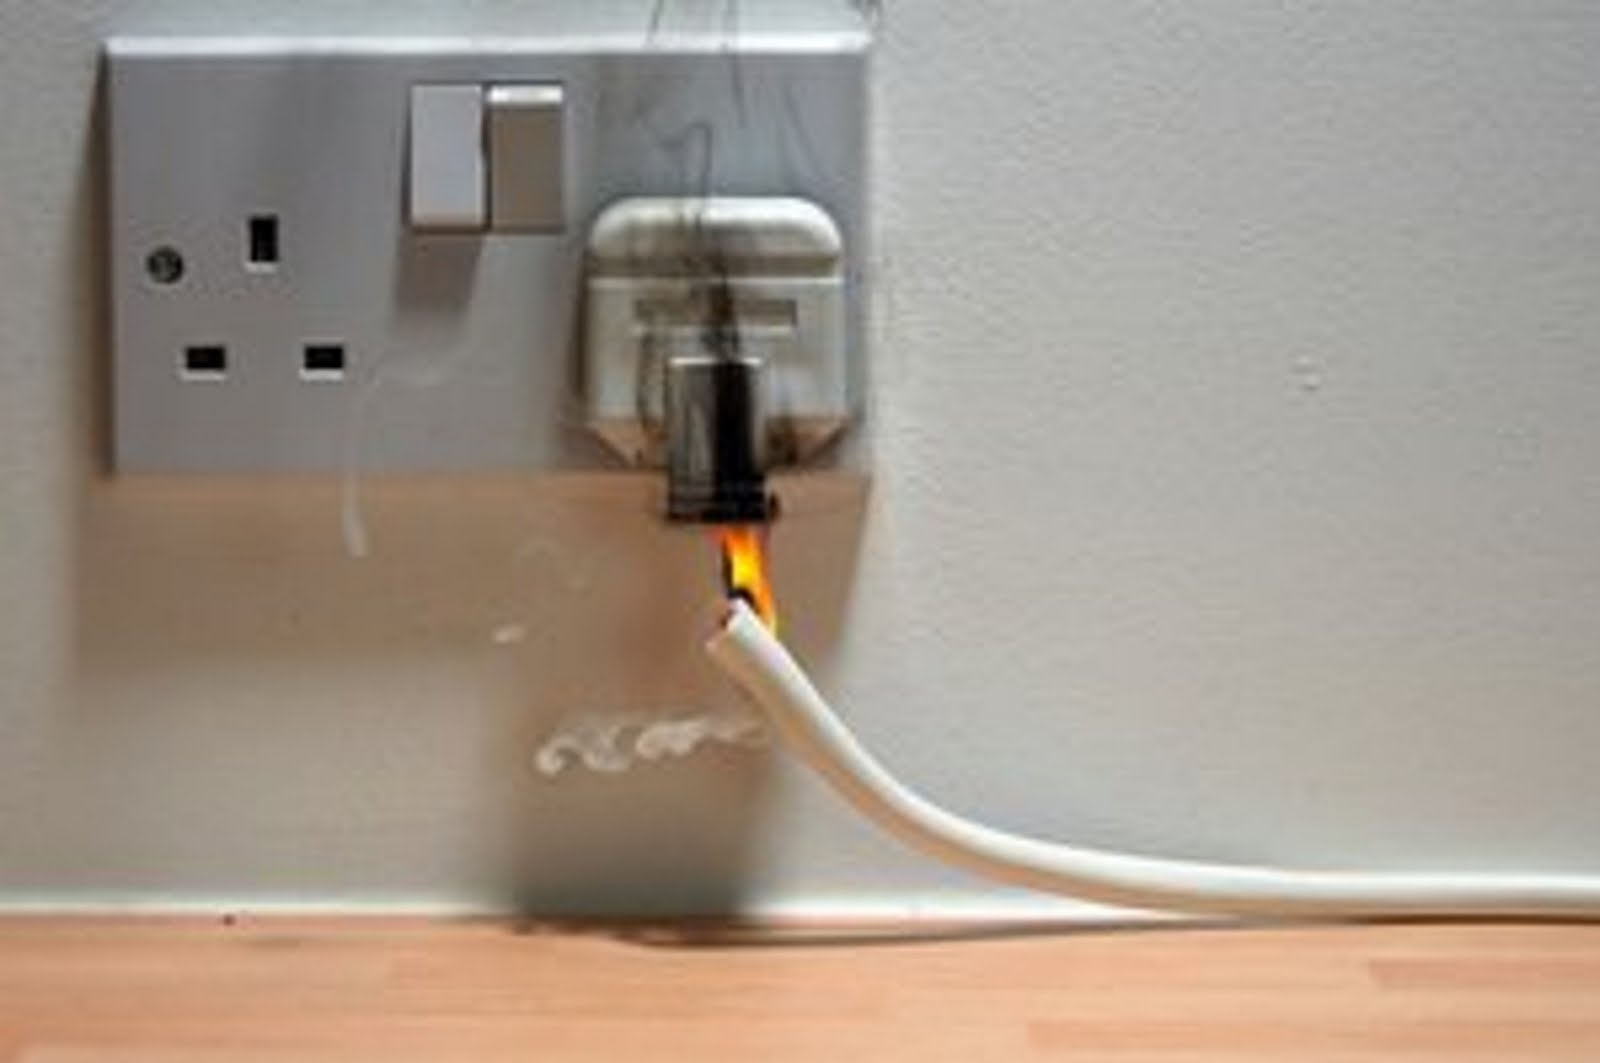 Flooding: Electrical safety guidance